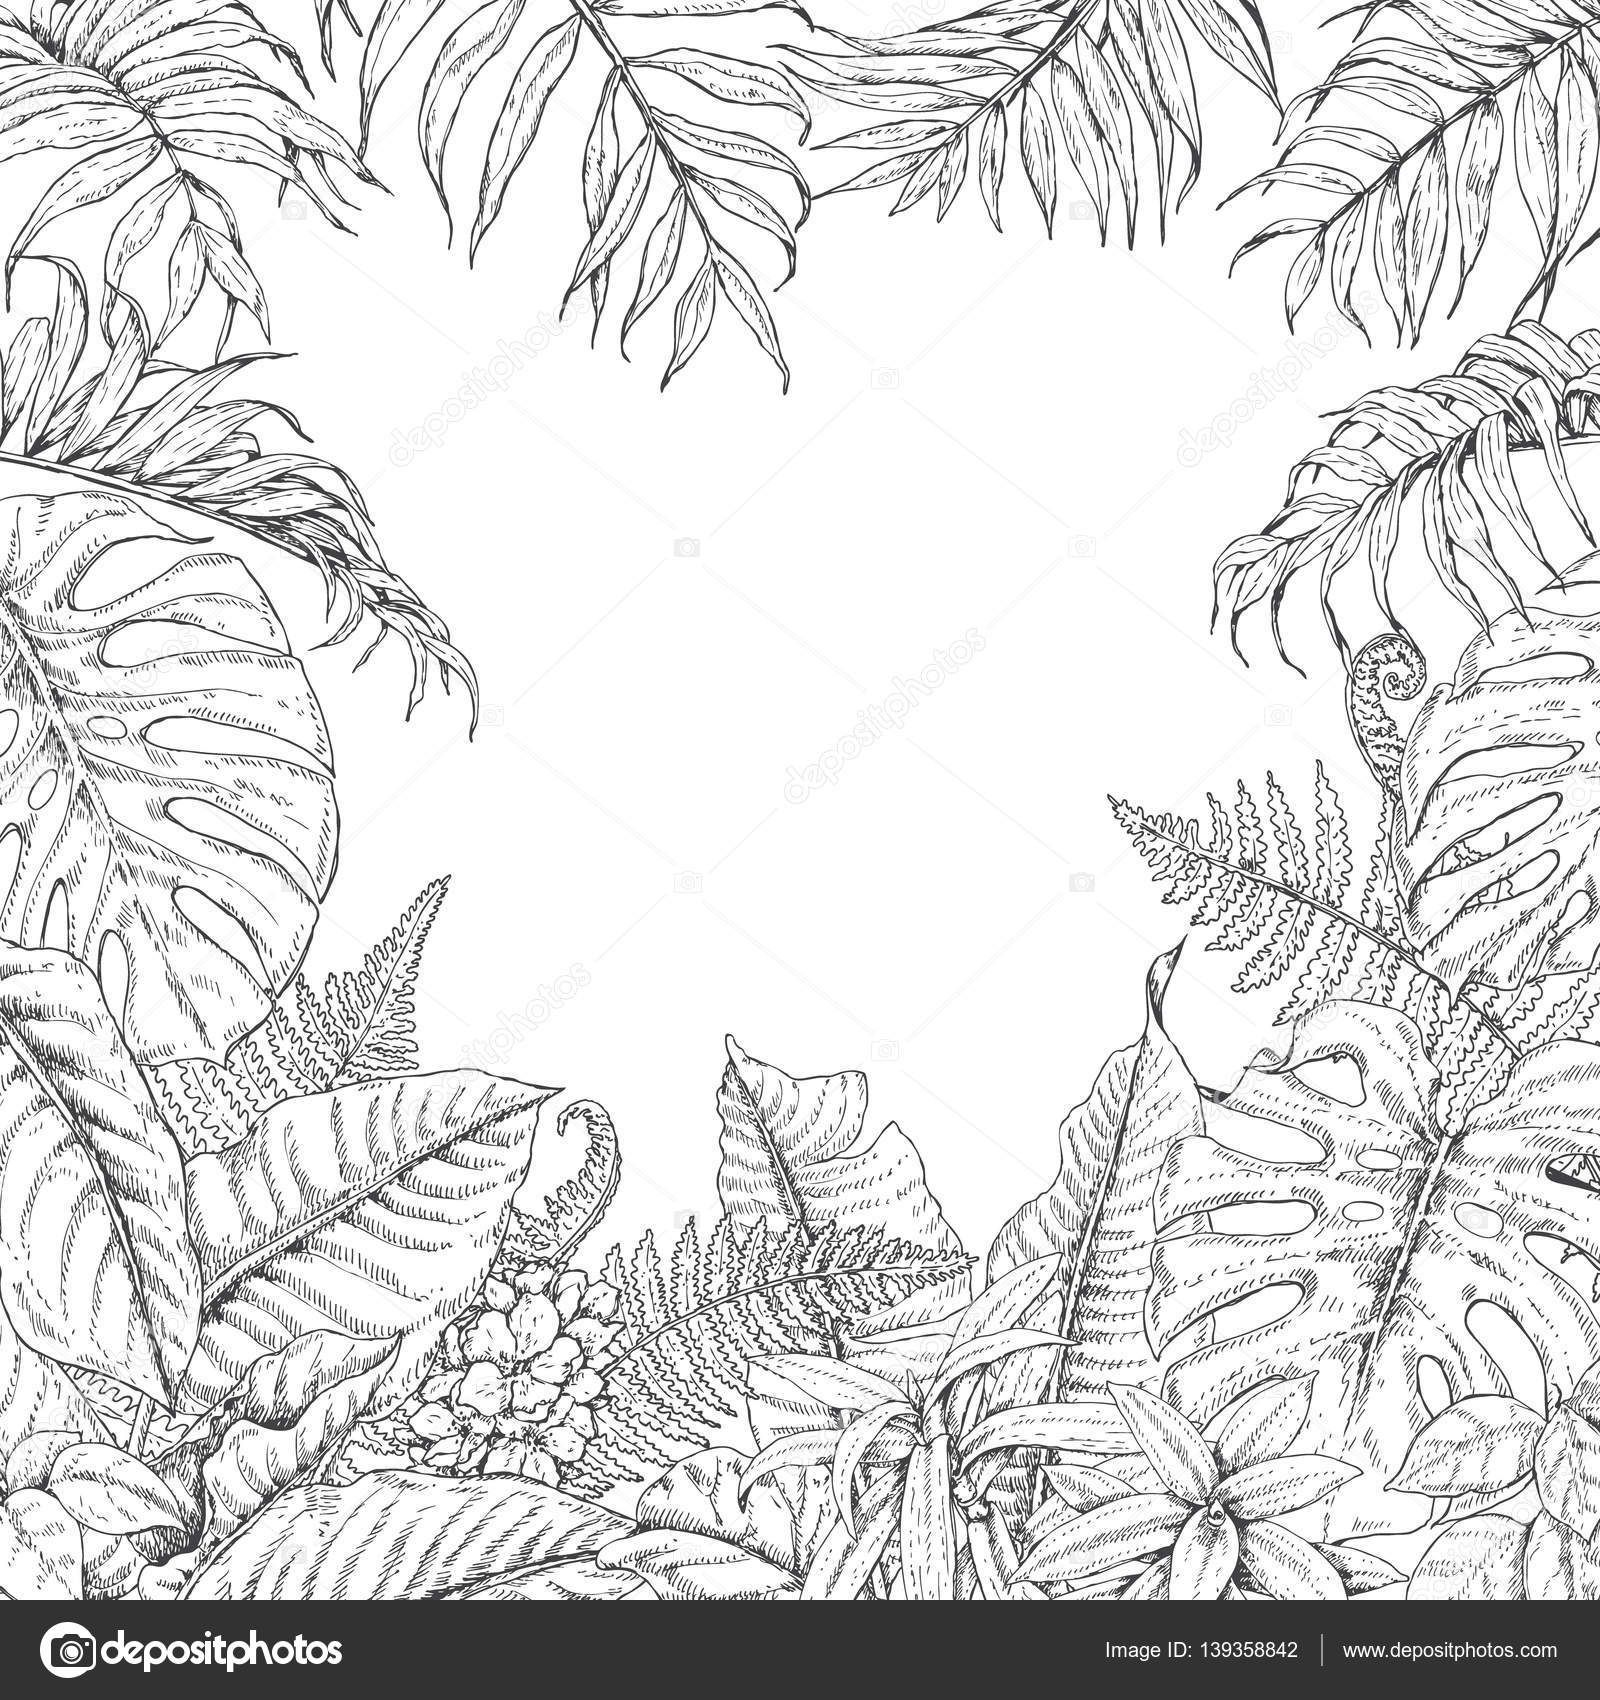 Leaves Of Tropical Plants Monochrome Square Floral Frame Monstera Dieffenbachia Fern Palm Fronds Ske Leaf Coloring Page Plant Sketches Tropical Frames